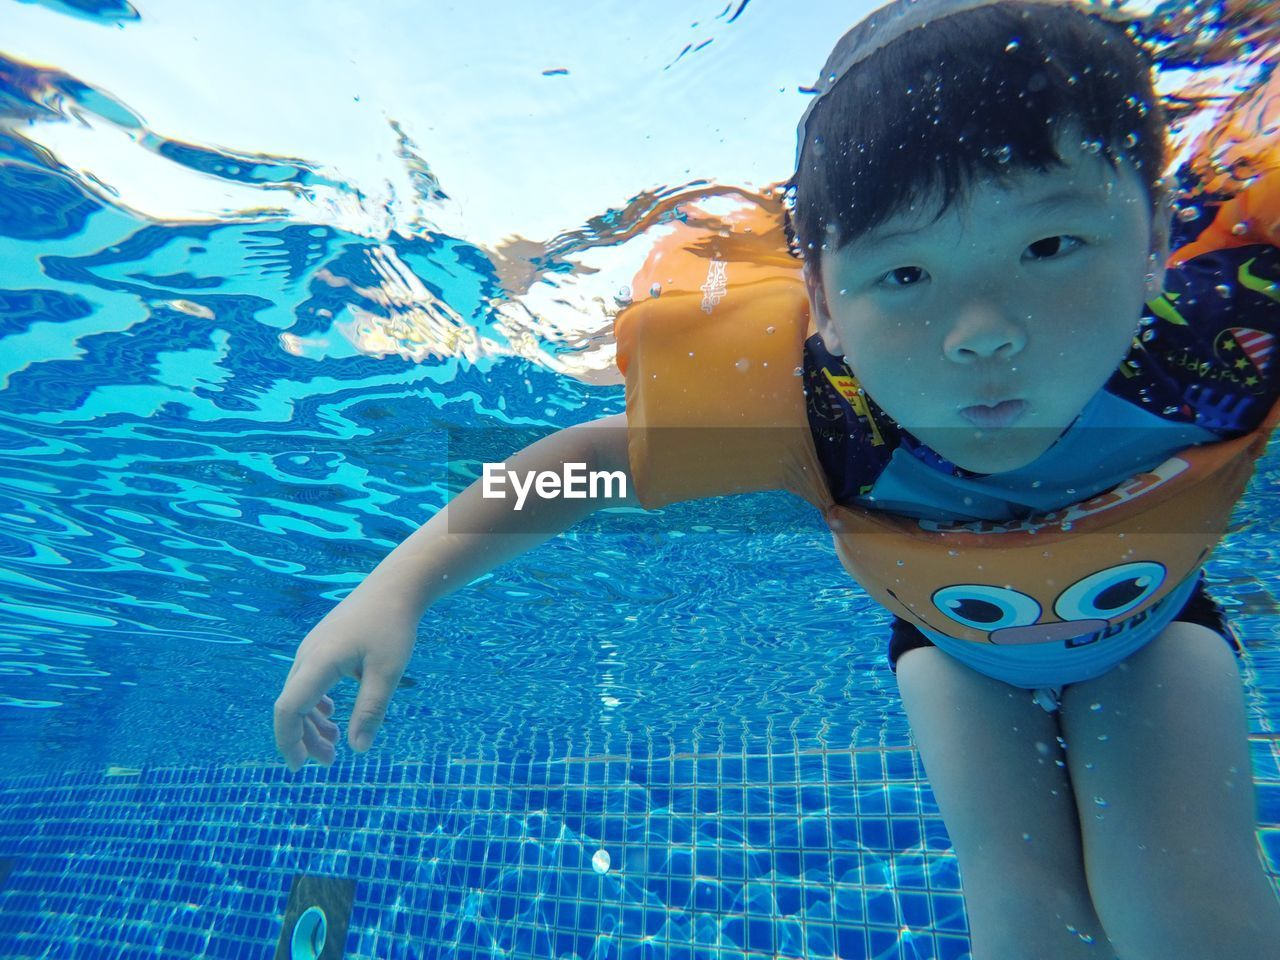 pool, childhood, child, swimming pool, water, leisure activity, one person, real people, lifestyles, boys, swimming, portrait, nature, day, front view, men, enjoyment, outdoors, innocence, eyewear